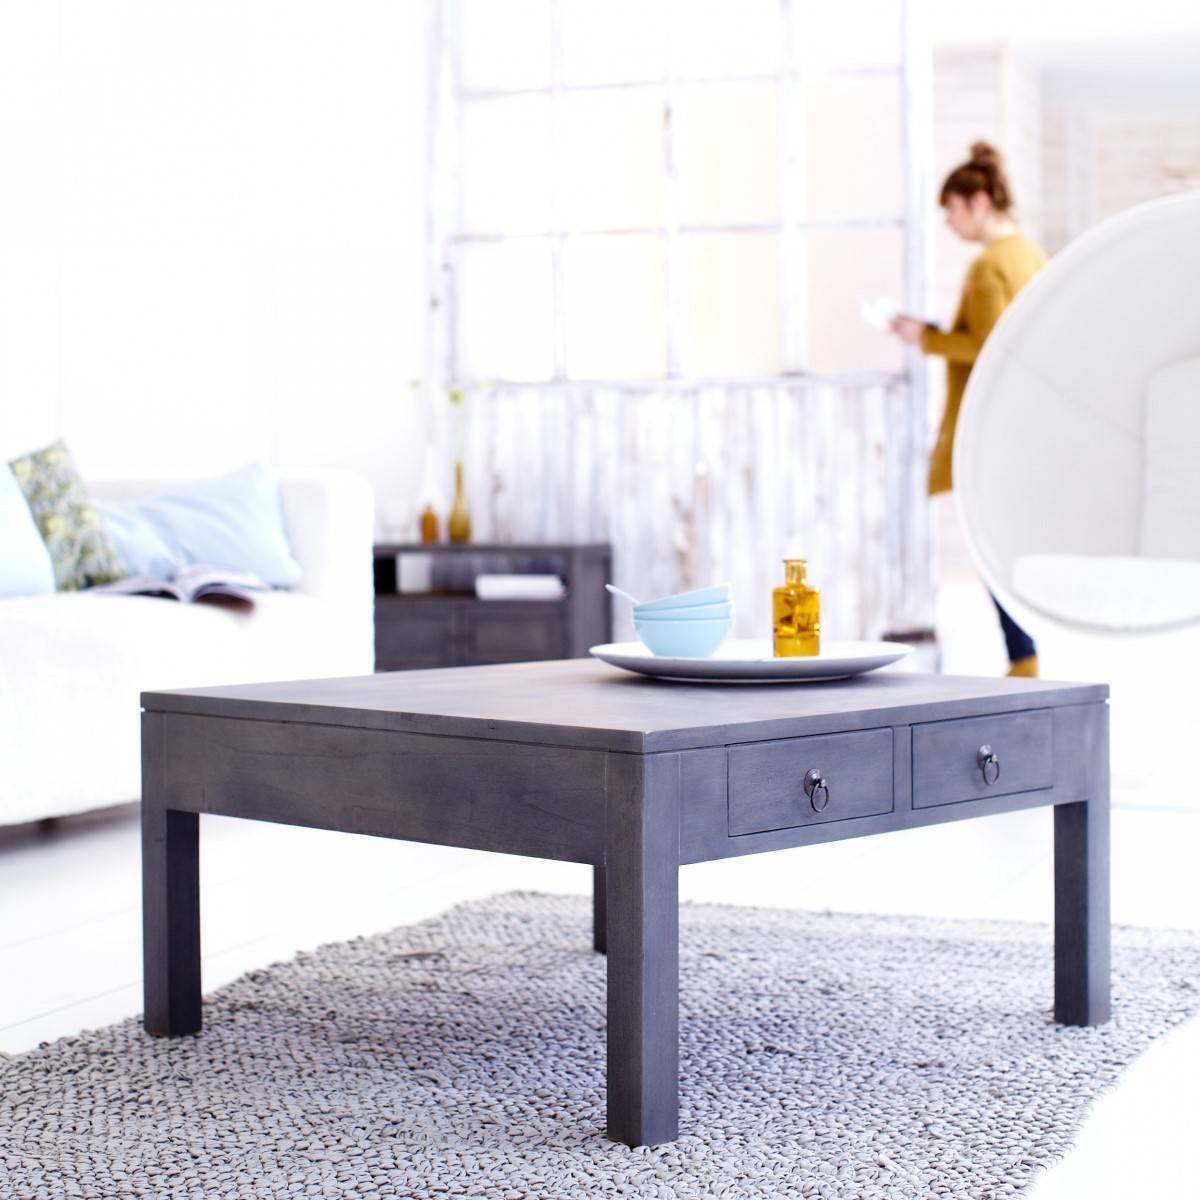 Furniture: Gray Wood Coffee Table Ideas Grey Modern Coffee Table regarding Grey Wood Coffee Tables (Image 16 of 30)